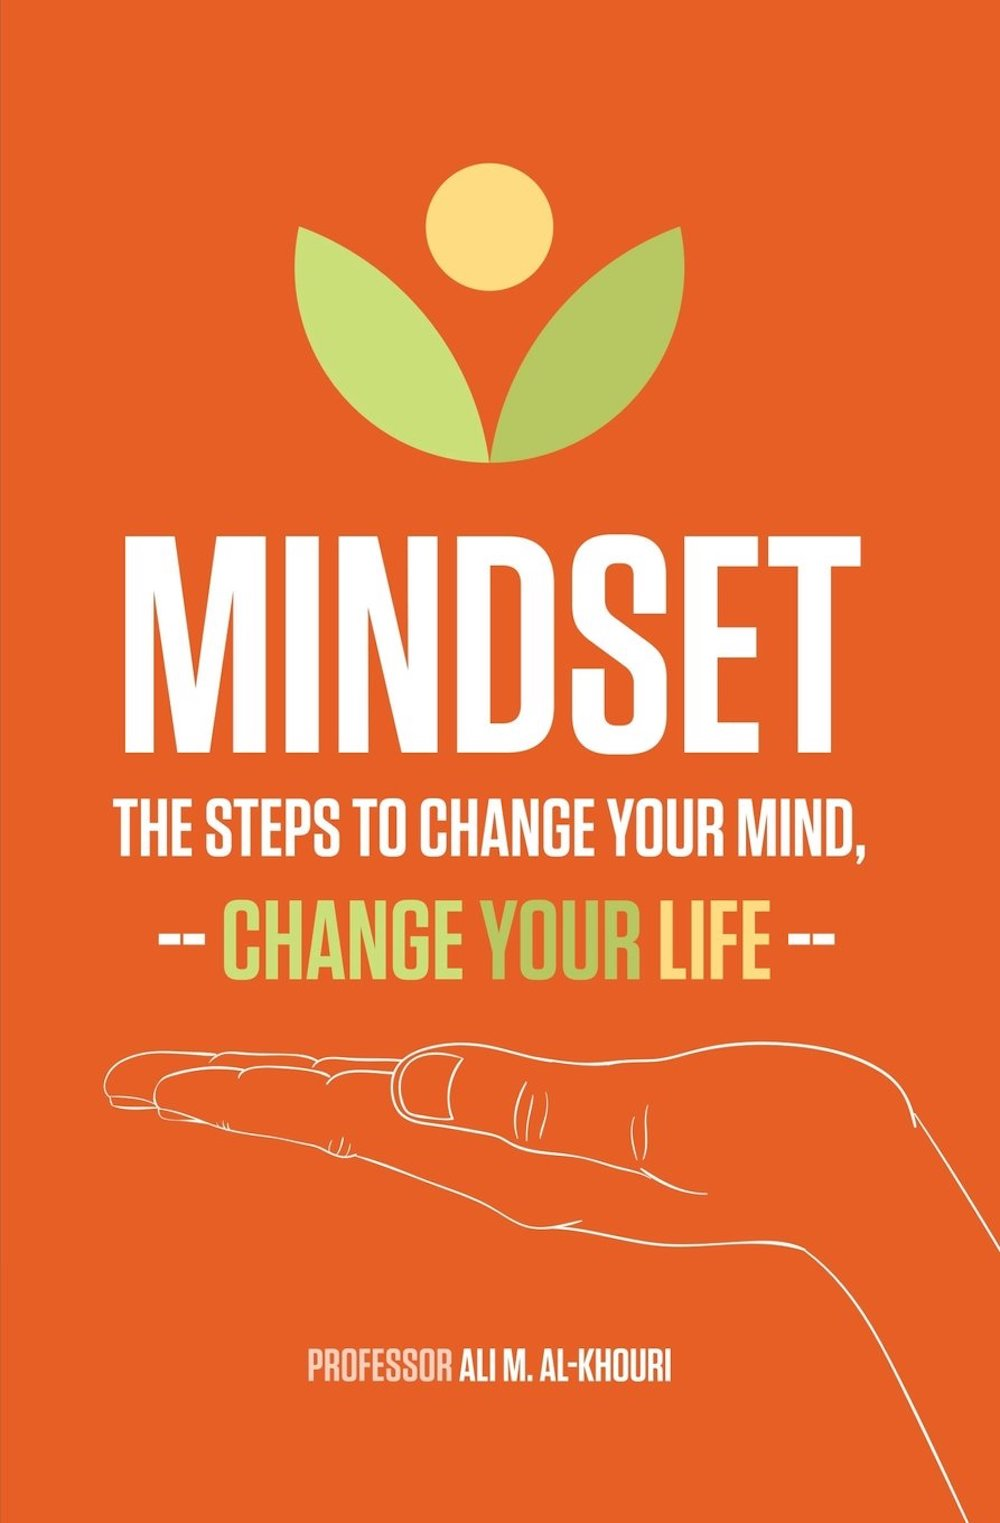 Mindset: The Steps to Change Your Mind, Change Your Life